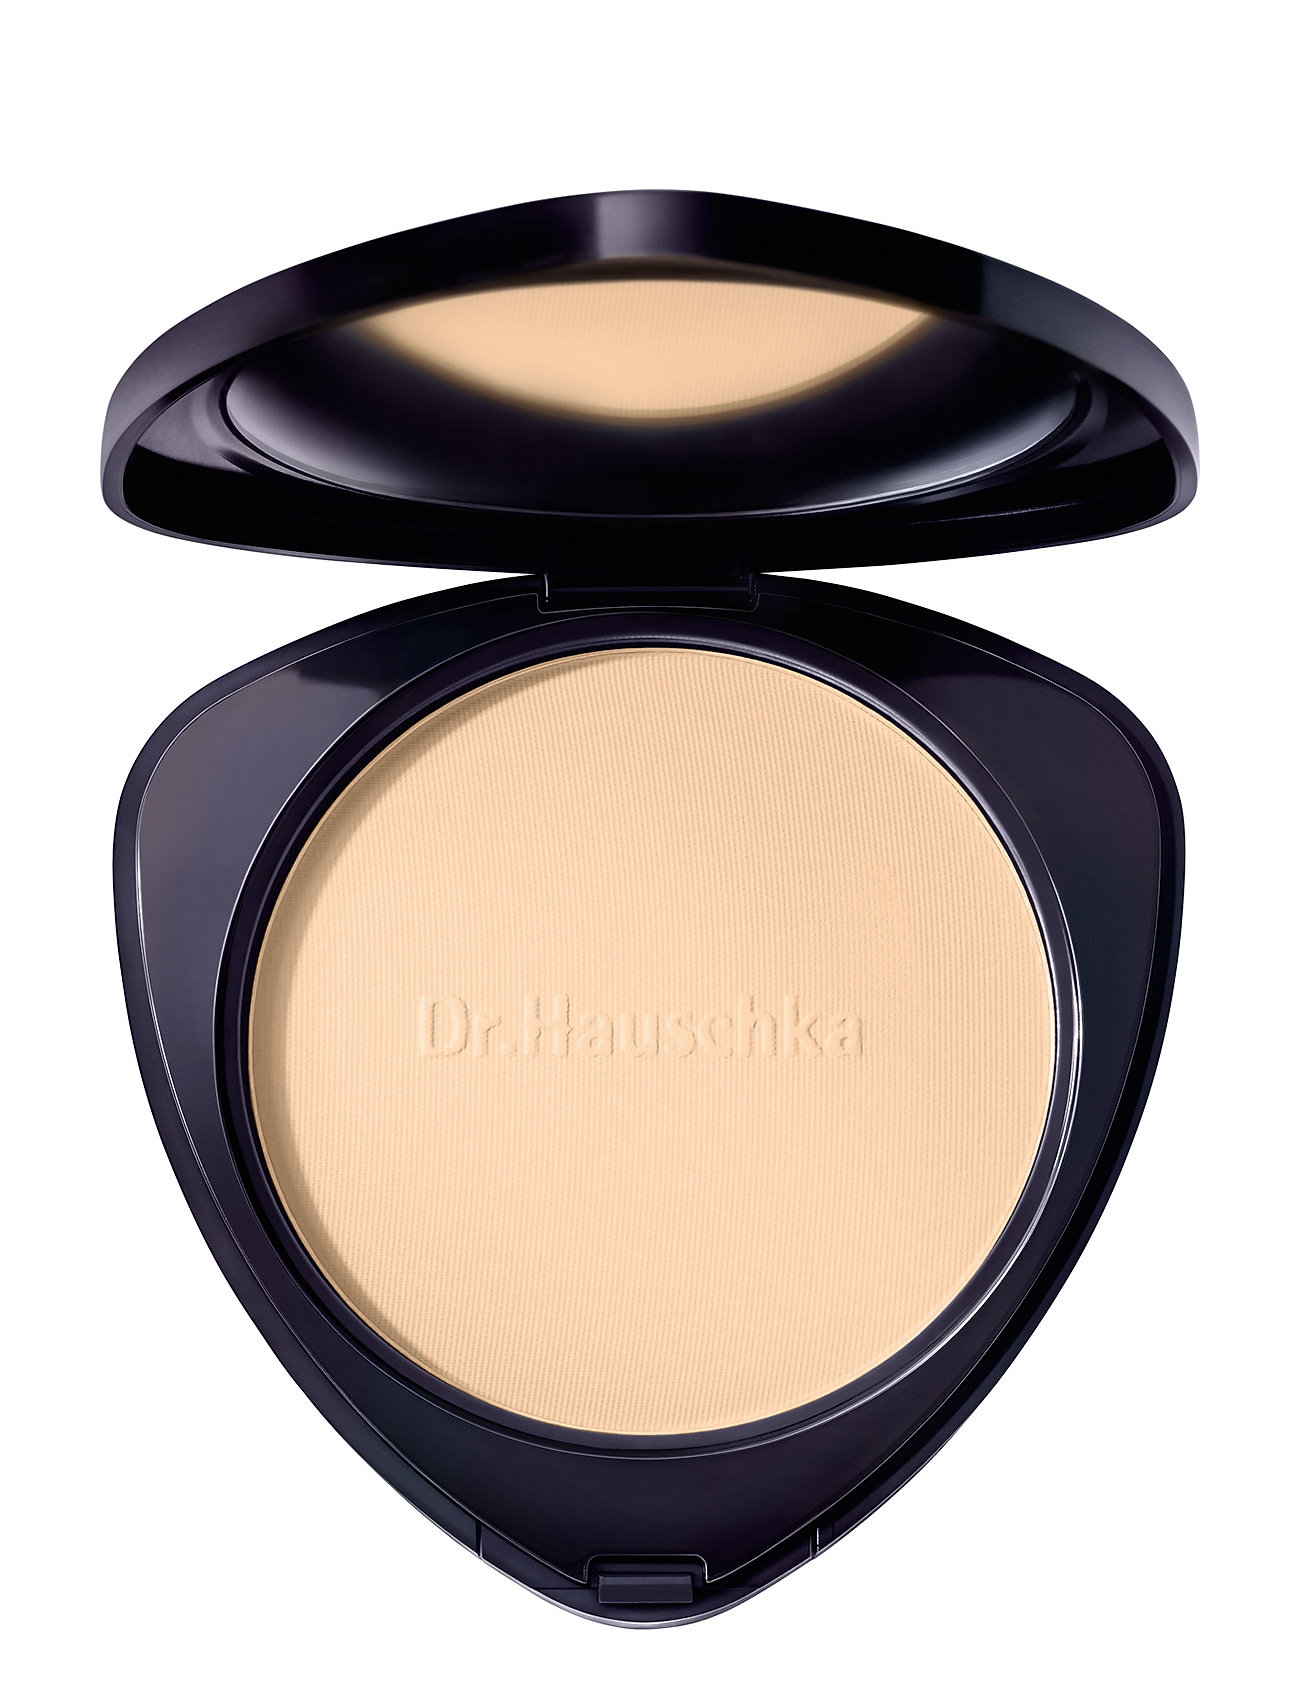 Image of Compact Powder 01 Macadamia Pudder Makeup Dr. Hauschka (3280076689)